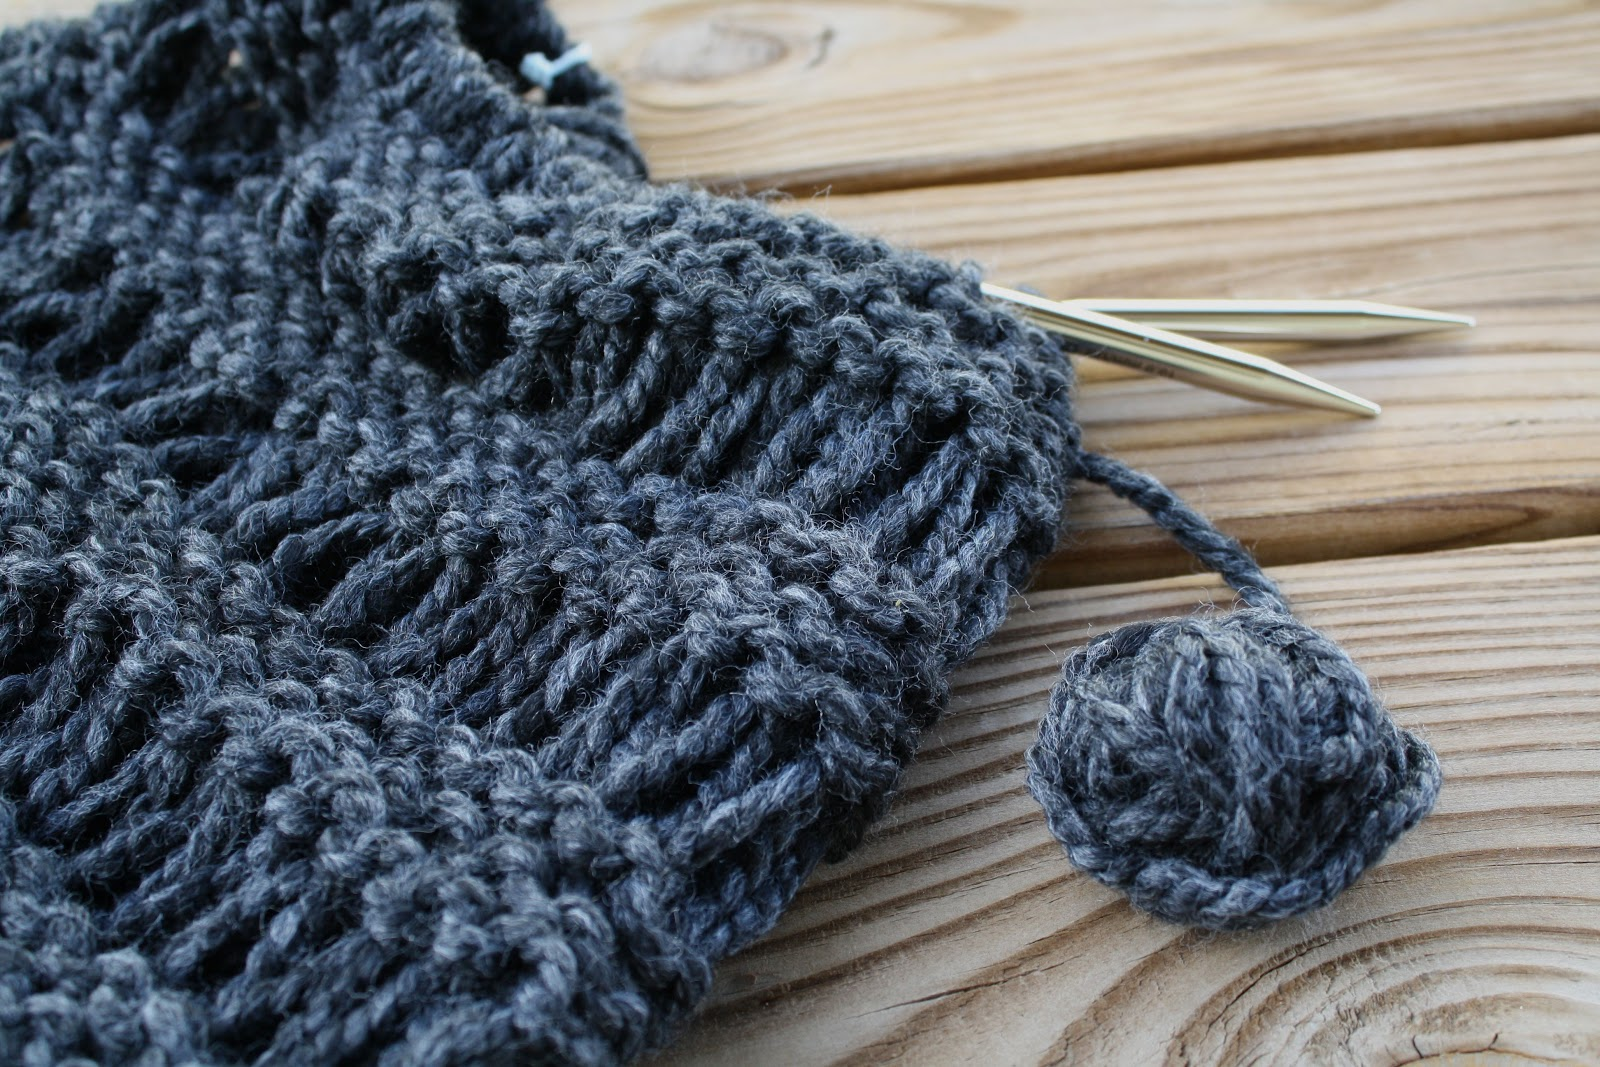 Knitted Drop Stitch Cowl Pattern : Luna Grey Fiber Arts: On The Needles - Drop Stitch Cowl